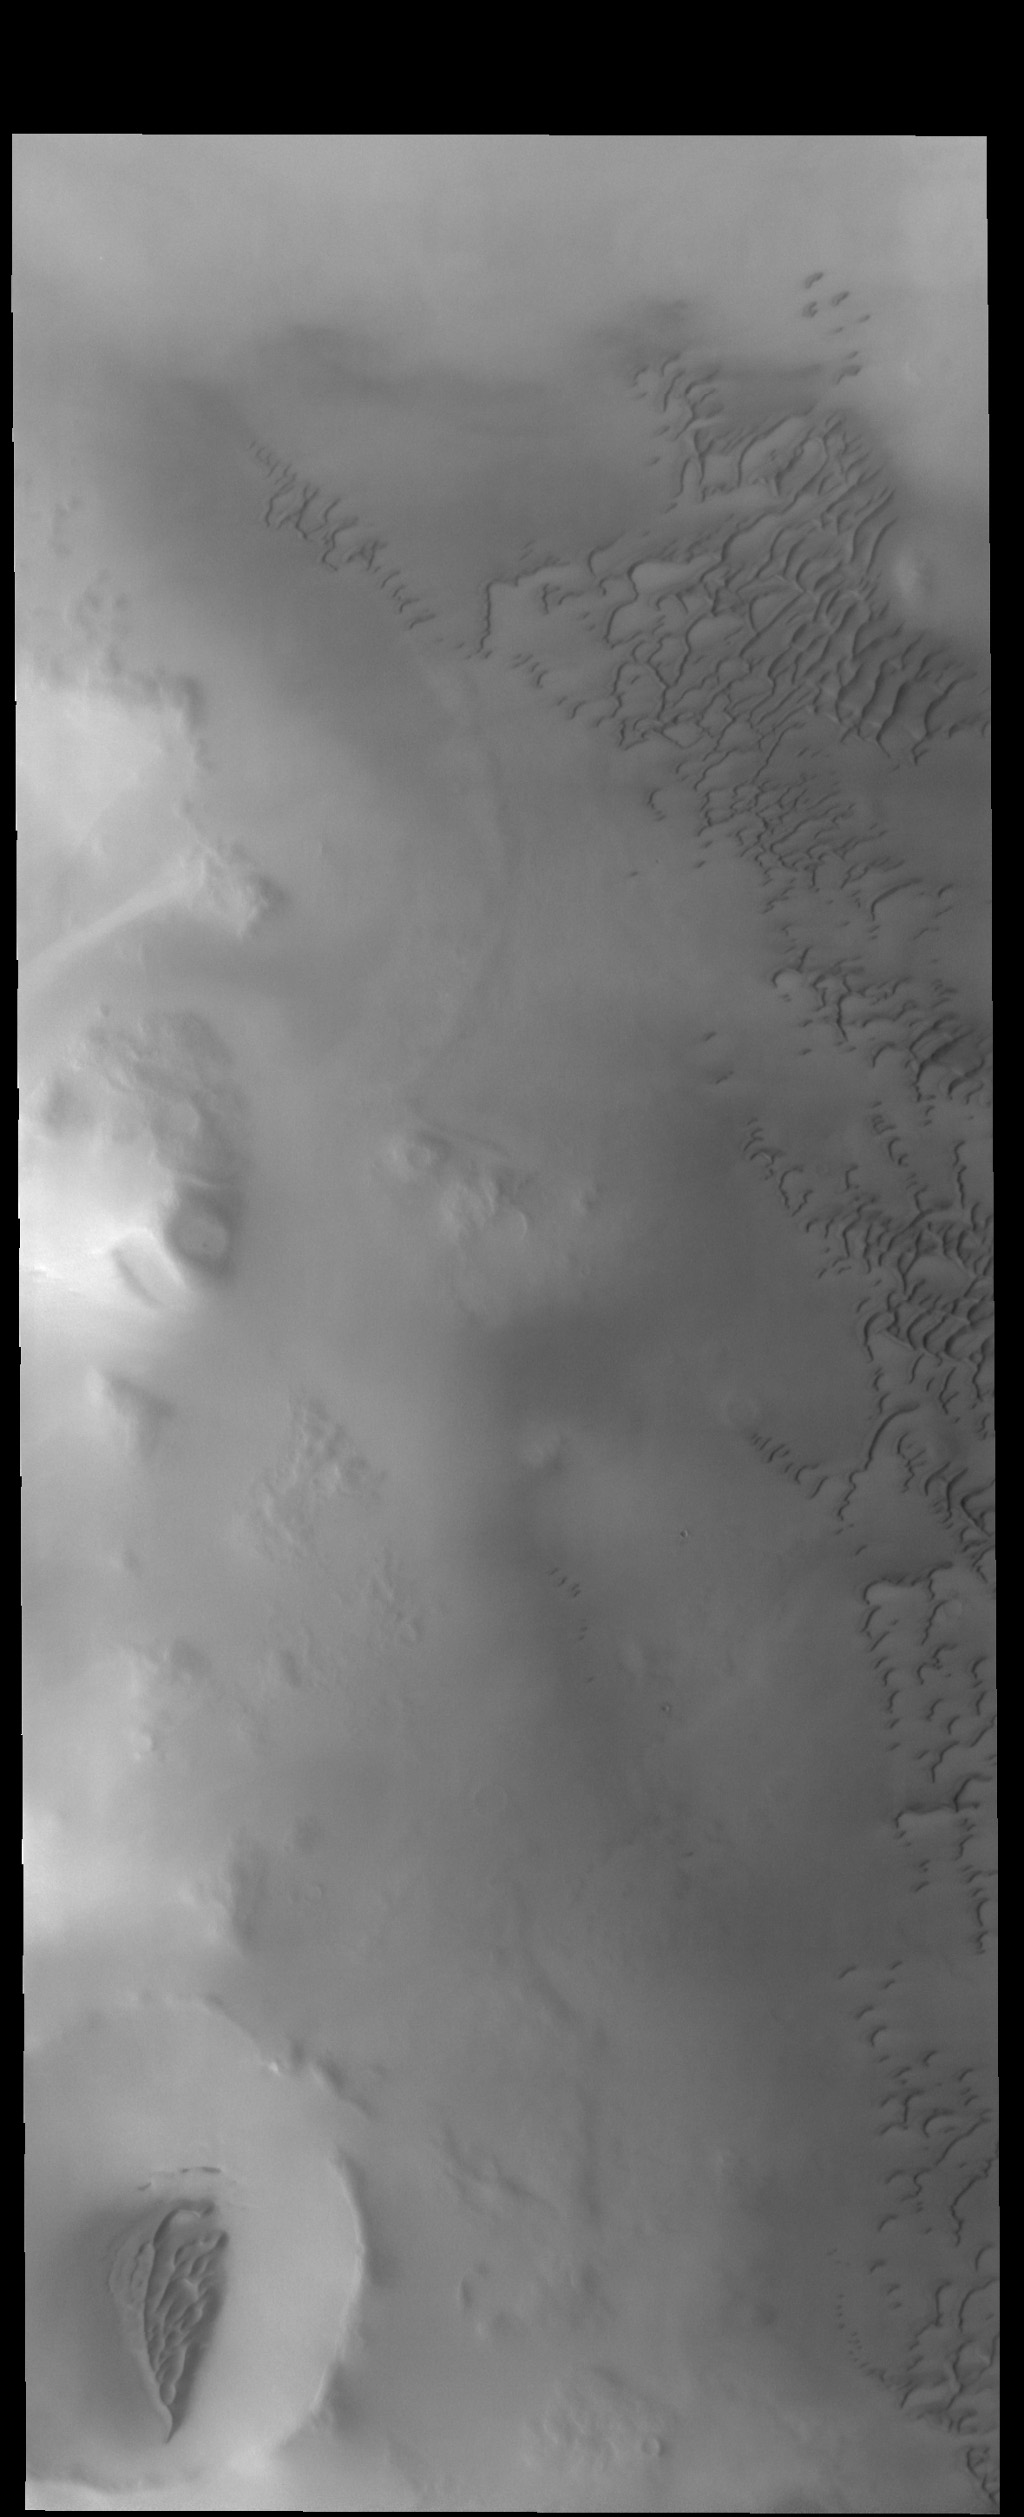 This image captured by NASA's 2001 Mars Odyssey spacecraft shows dunes on the margin of Olympia Undae, a large dune field near the north pole.